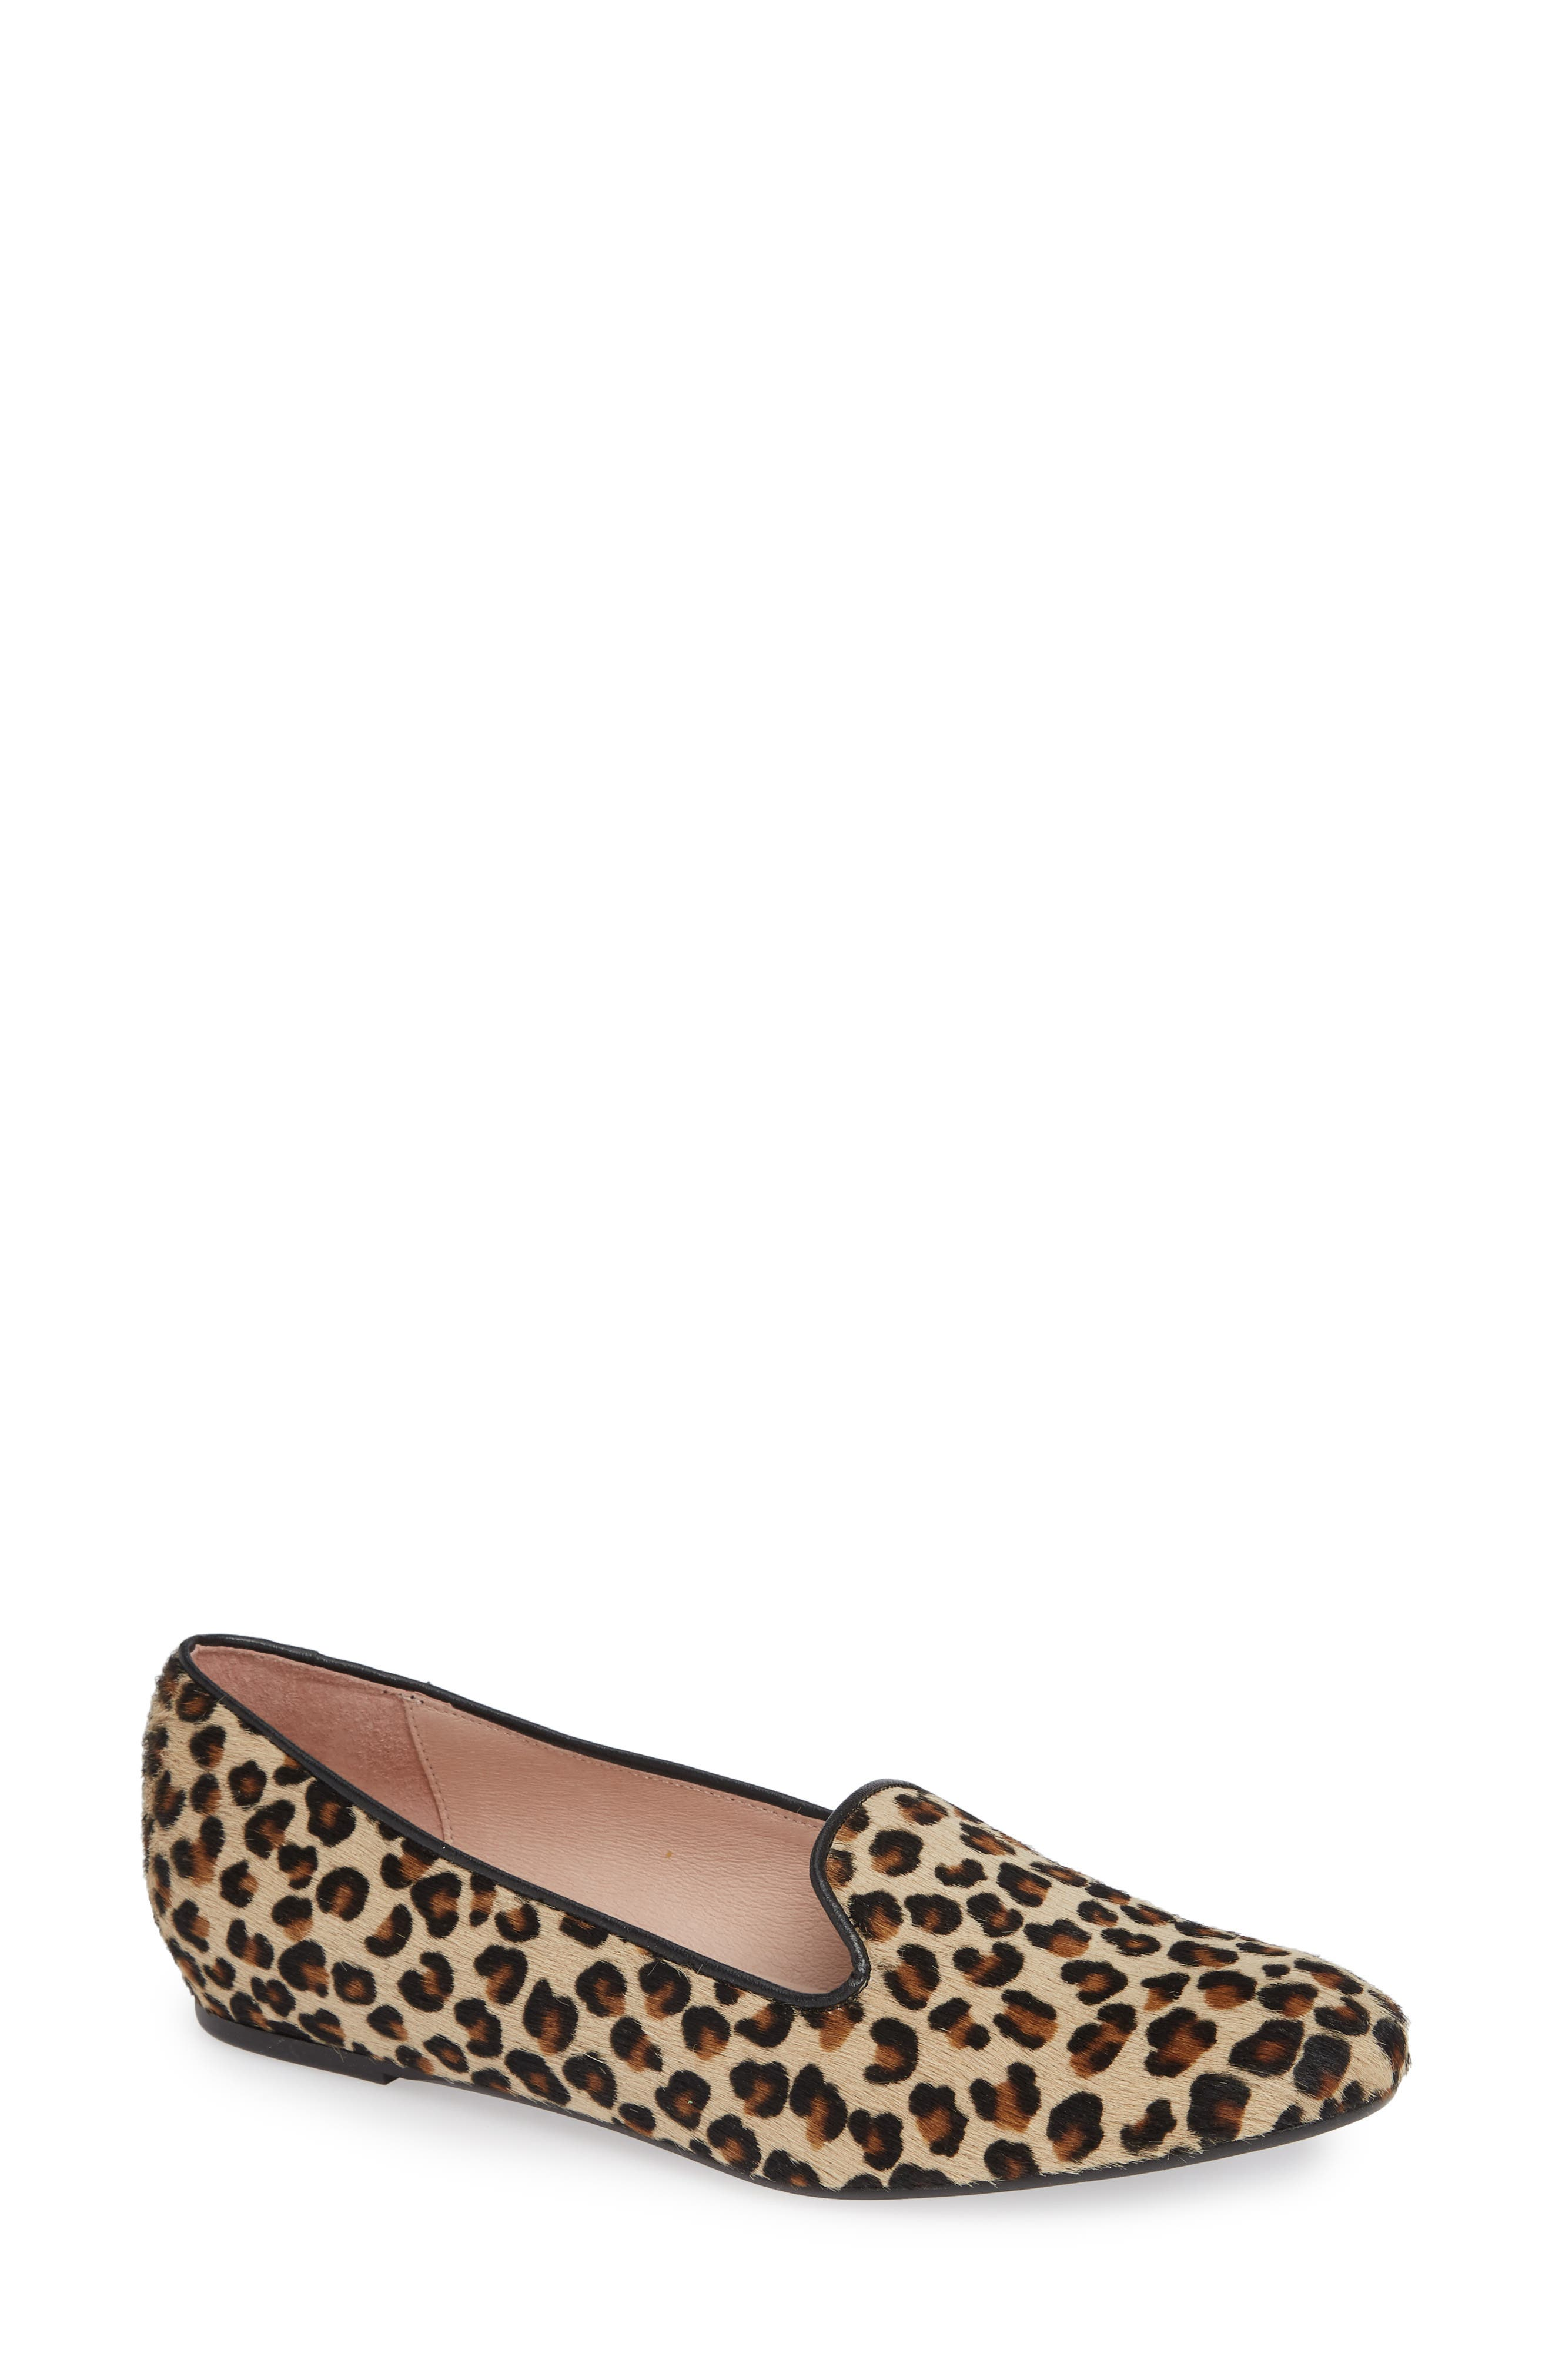 PATRICIA GREEN WAVERLY GENUINE CALF HAIR LOAFER FLAT